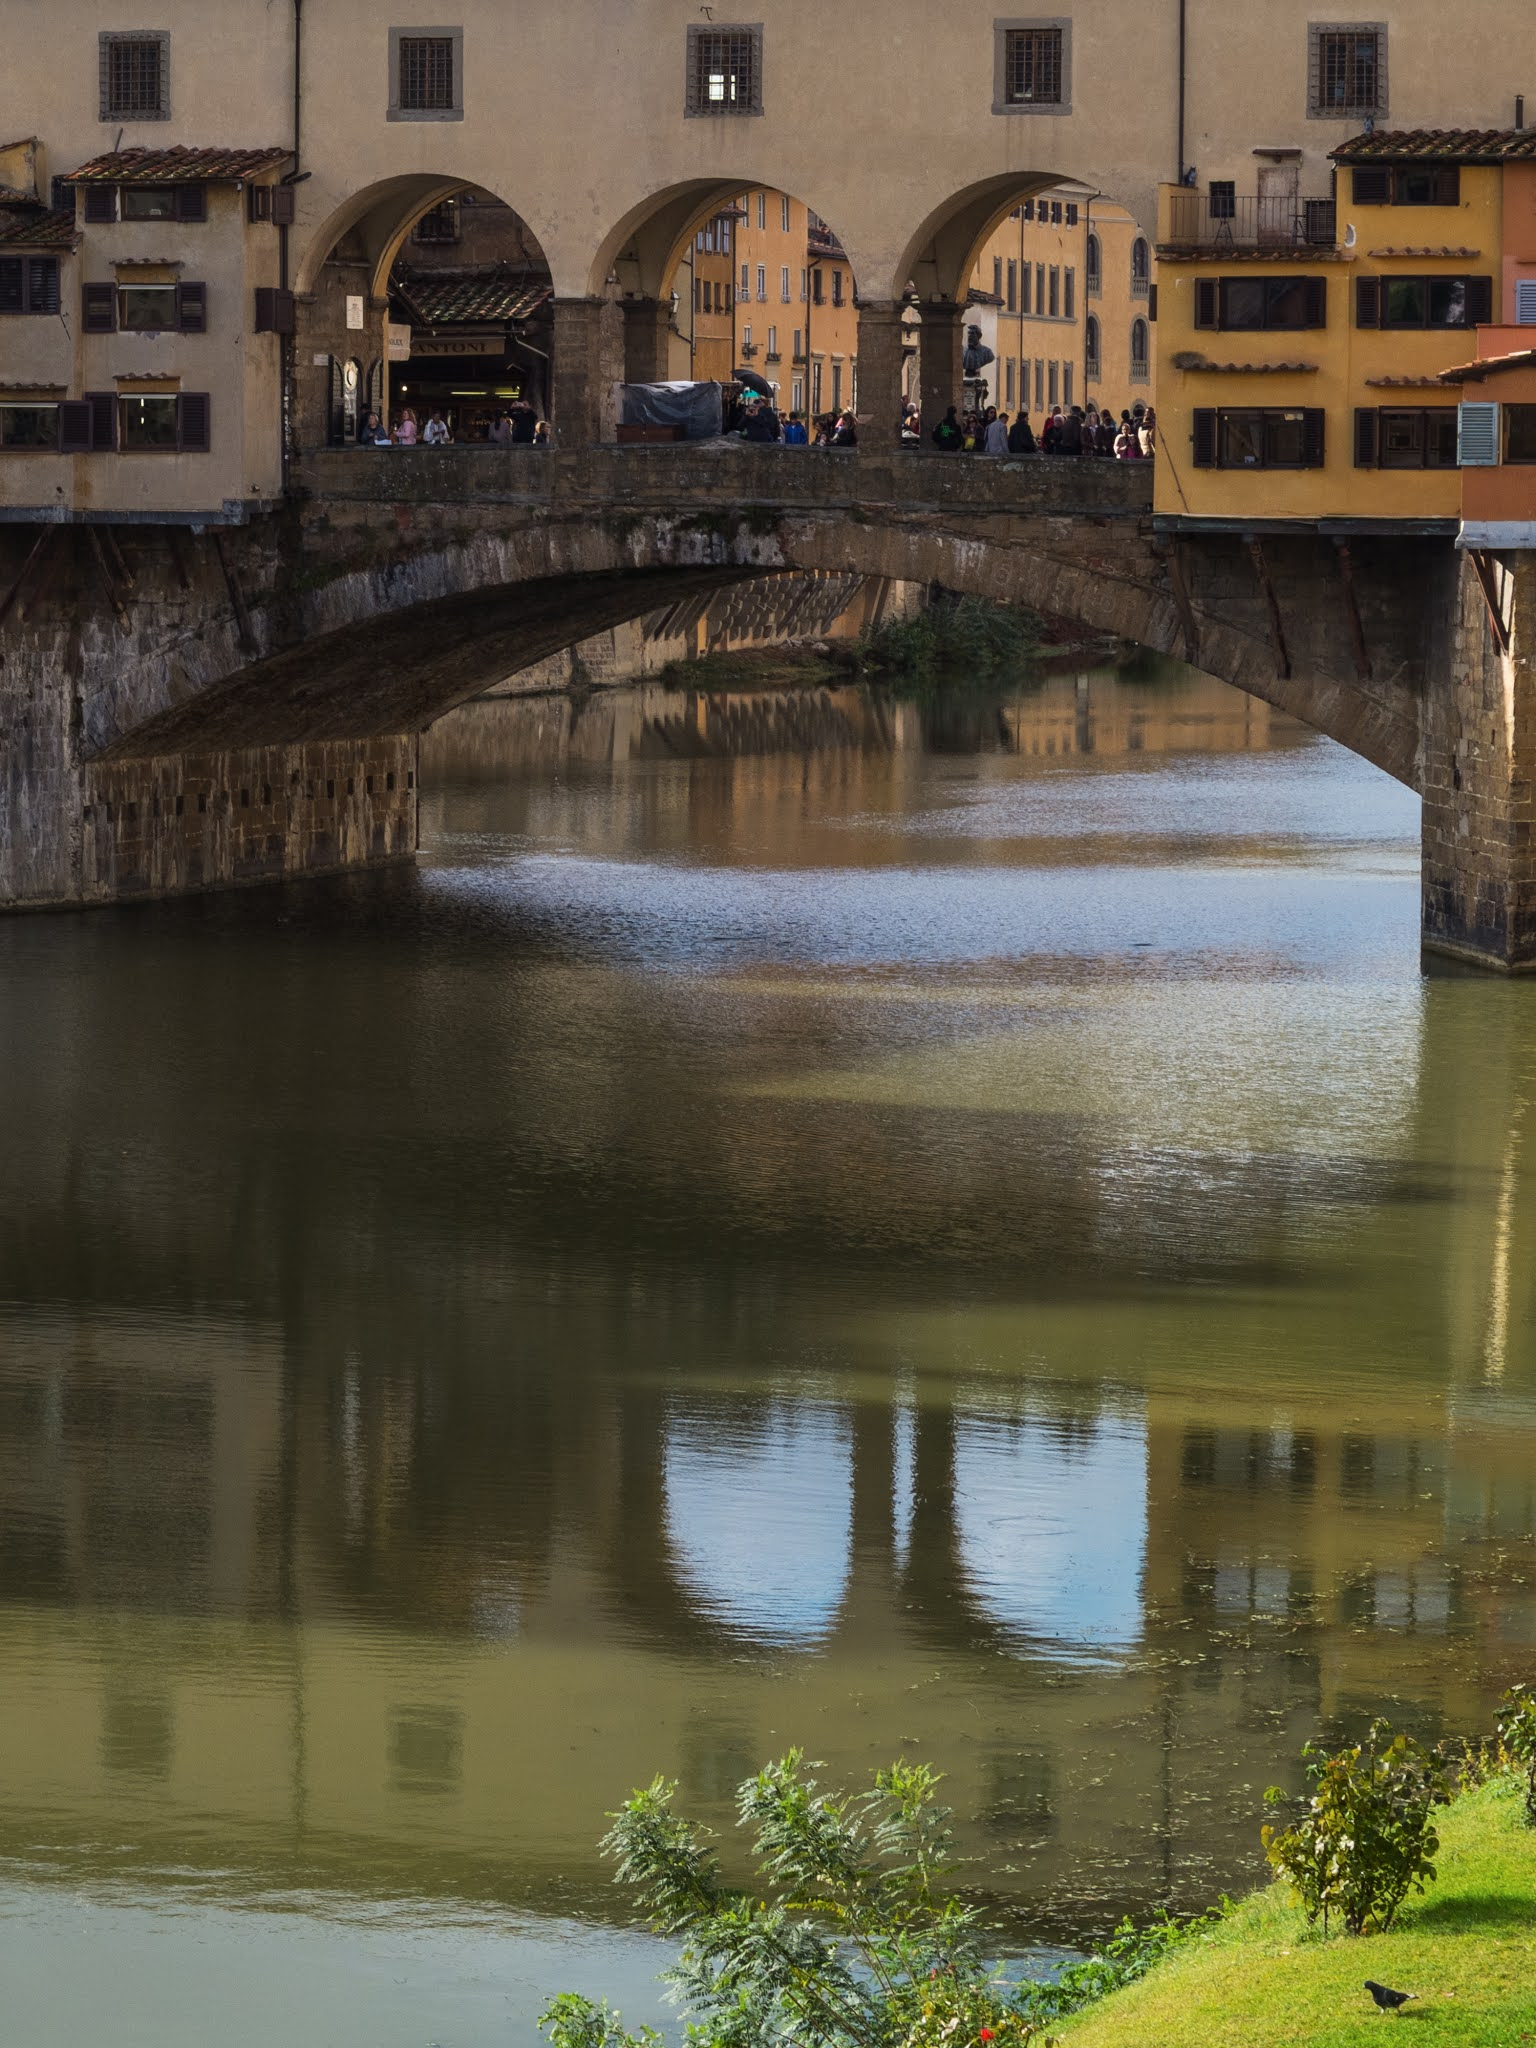 Reflection of Ponte Veccio in the river Arno.